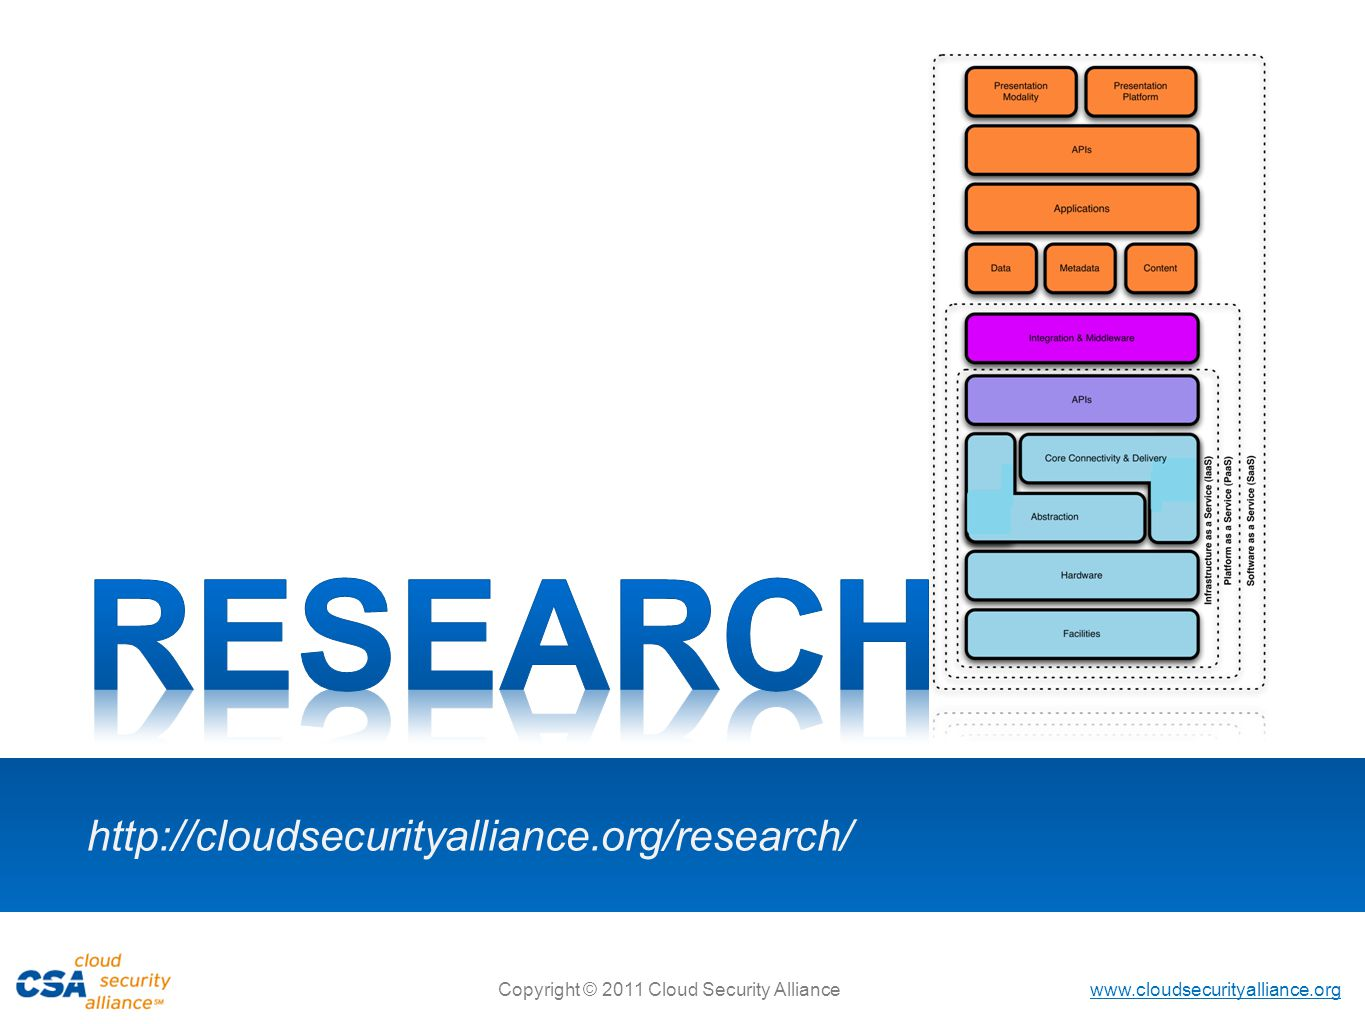 RESEARCH http://cloudsecurityalliance.org/research/ 4